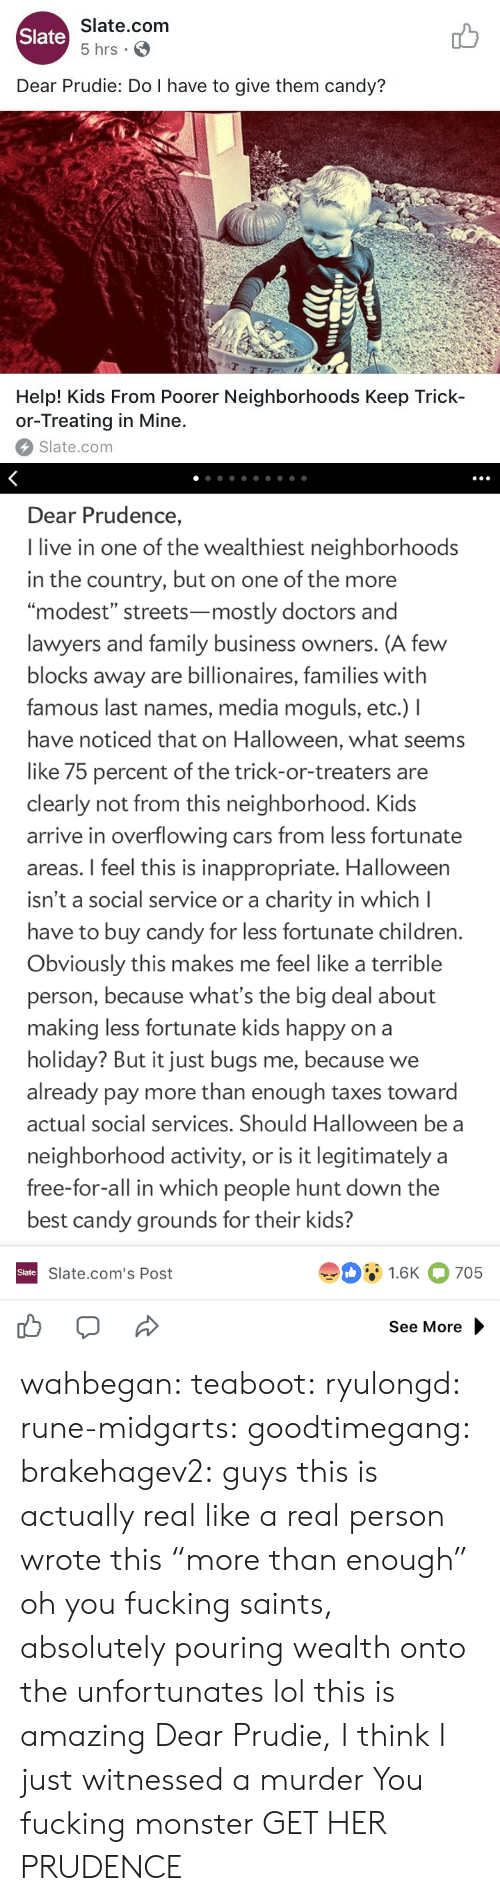 "modest: Slate.com  5 hrs .  Slate  Dear Prudie: Do I have to give them candy?  aT  T-T  Help! Kids From Poorer Neighborhoods Keep Trick-  or-Treating in Mine.  Slate.com   Dear Prudence,  I live in one of the wealthiest neighborhoods  in the country, but on one of the more  ""modest"" streets-mostly doctors and  lawyers and family business owners. (A few  blocks away are billionaires, families with  famous last names, media moguls, etc.) I  have noticed that on Halloween, what seems  like 75 percent of the trick-or-treaters are  clearly not from this neighborhood. Kids  arrive in overflowing cars from less fortunate  areas. I feel this is inappropriate. Halloween  isn't a social service or a charity in which l  have to buy candy for less fortunate children  Obviously this makes me feel like a terrible  person, because what's the big deal about  making less fortunate kids happy on a  holiday? But it just bugs me, because we  already pay more than enough taxes toward  actual social services. Should Halloween be a  neighborhood activity, or is it legitimately a  free-for-all in which people hunt down the  best candy grounds for their kids?  91.6K 705  Slate  Slate.com's Post  See More wahbegan: teaboot:  ryulongd:  rune-midgarts:  goodtimegang:  brakehagev2:  guys this is actually real like a real person wrote this  ""more than enough"" oh you fucking saints, absolutely pouring wealth onto the unfortunates   lol this is amazing   Dear Prudie, I think I just witnessed a murder  You fucking monster  GET HER PRUDENCE"